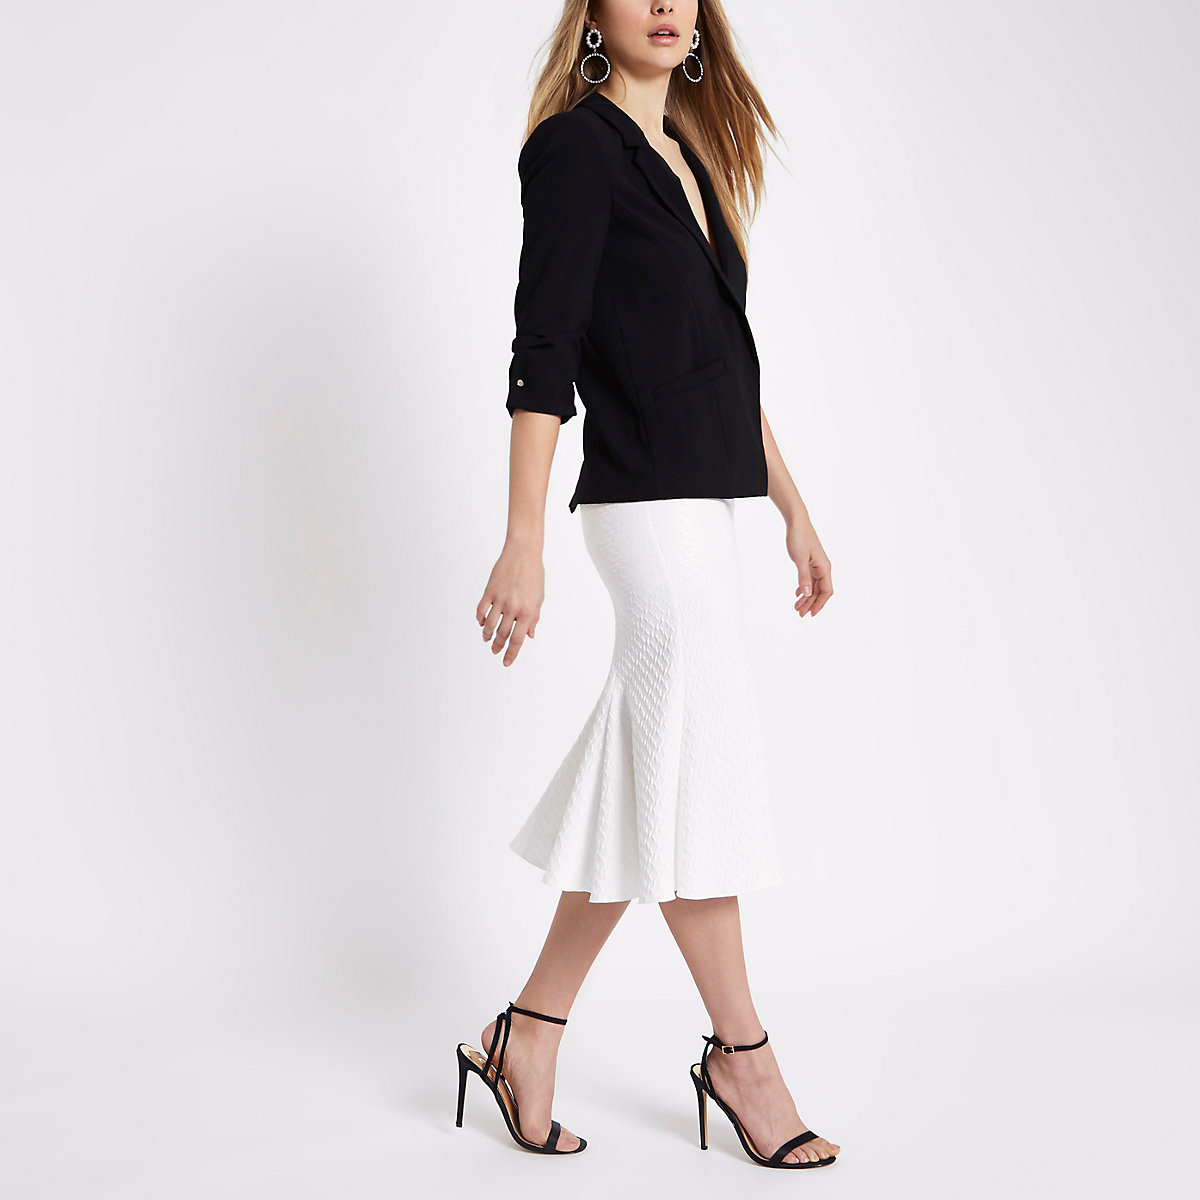 White jacquard flared hem pencil skirt